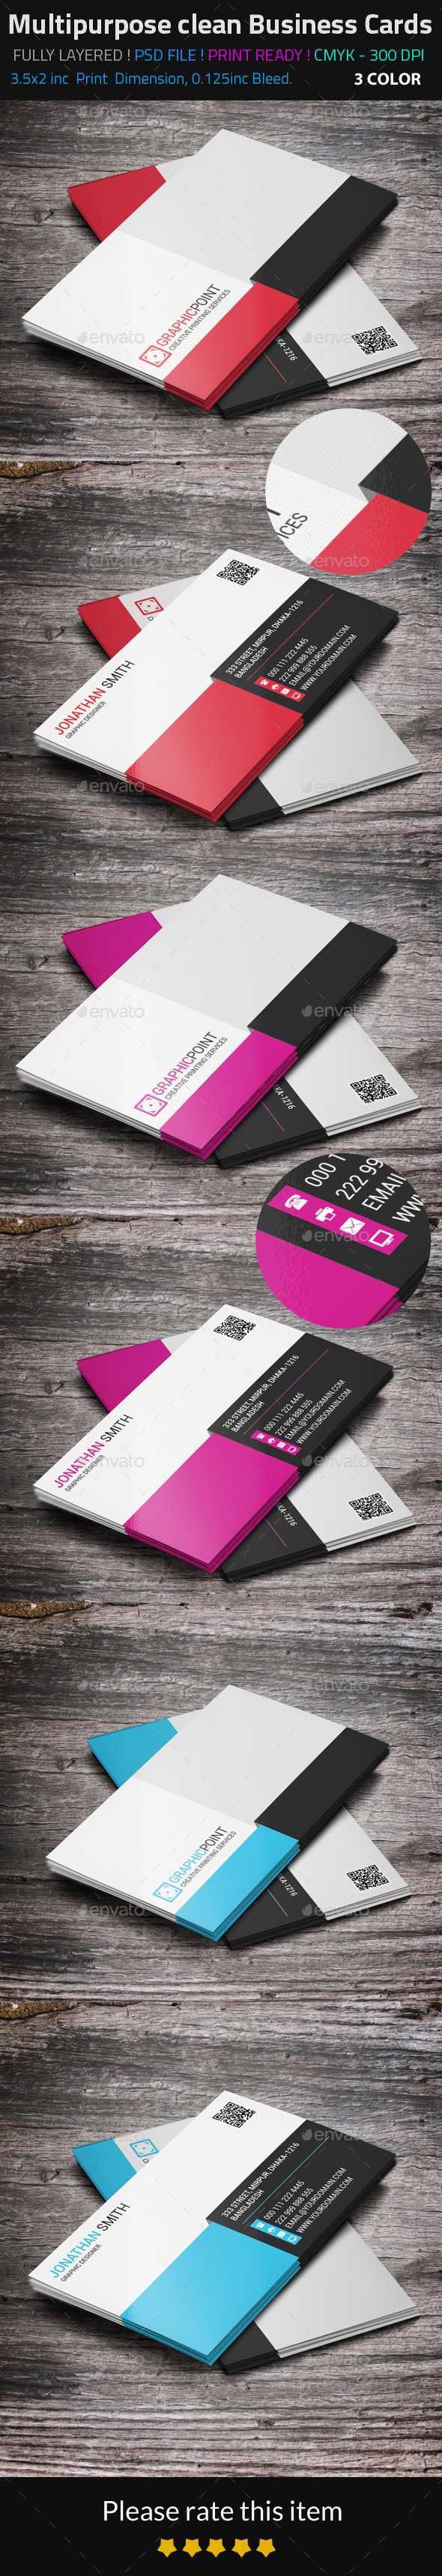 Multipurpose Clean Business Cards - Corporate Business Cards